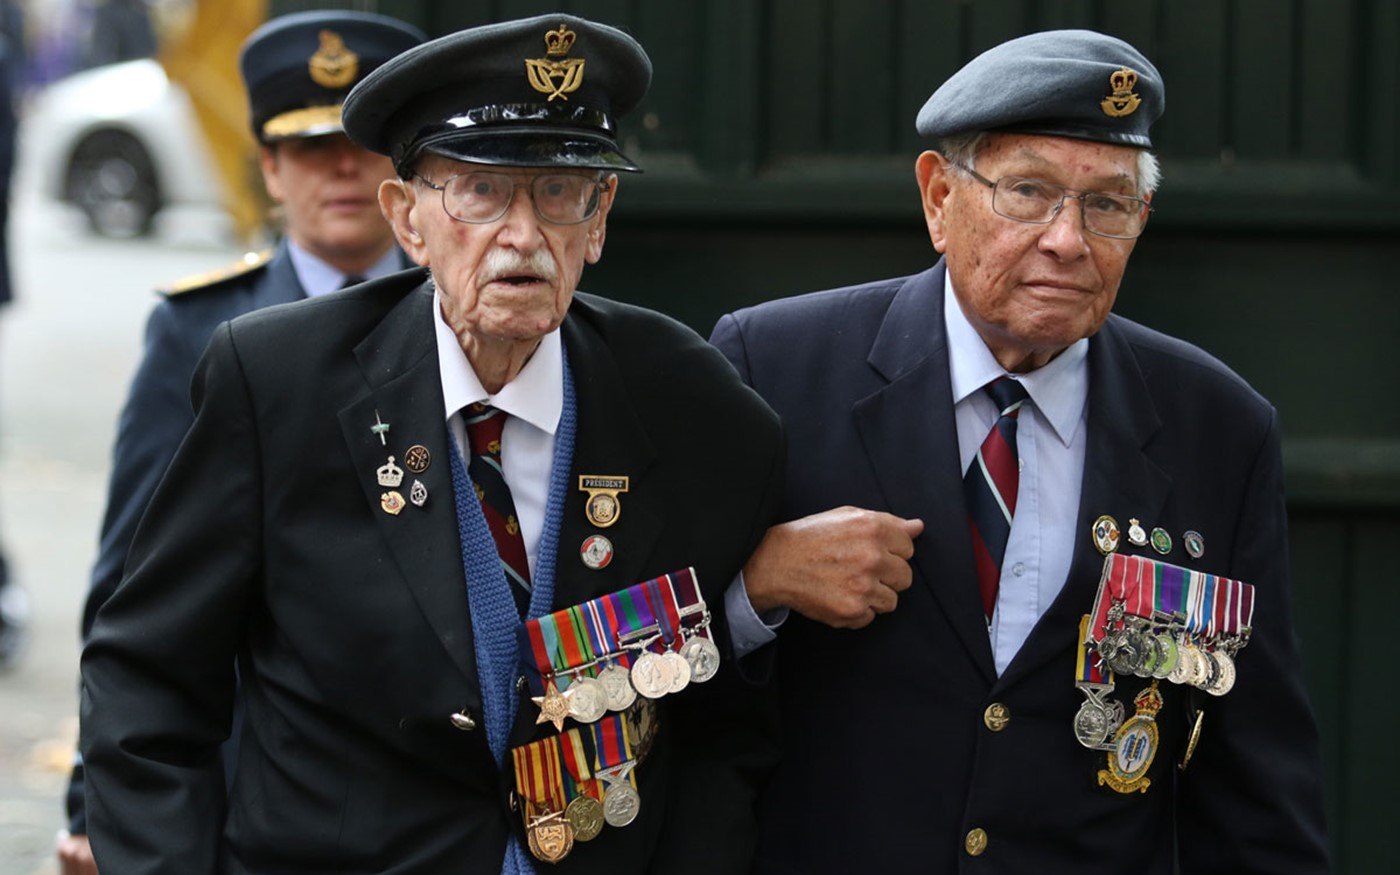 Royal Air Force Veterans arrive for the service